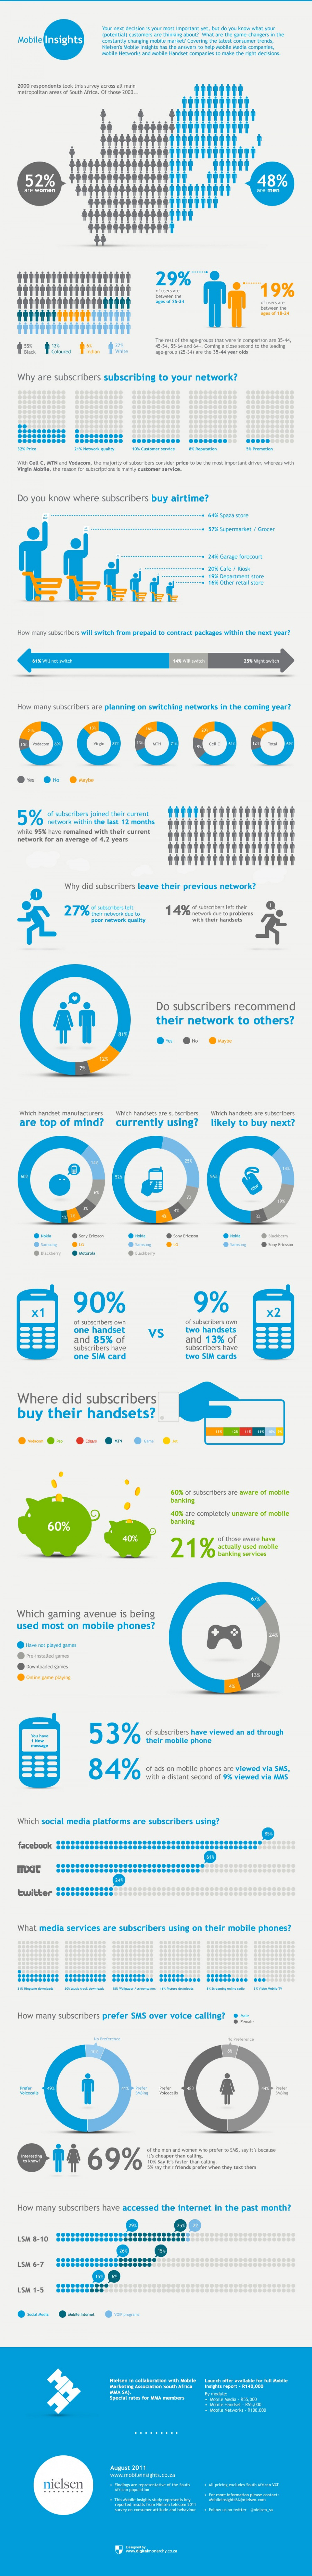 Infographic: Mobile In South Africa Infographic